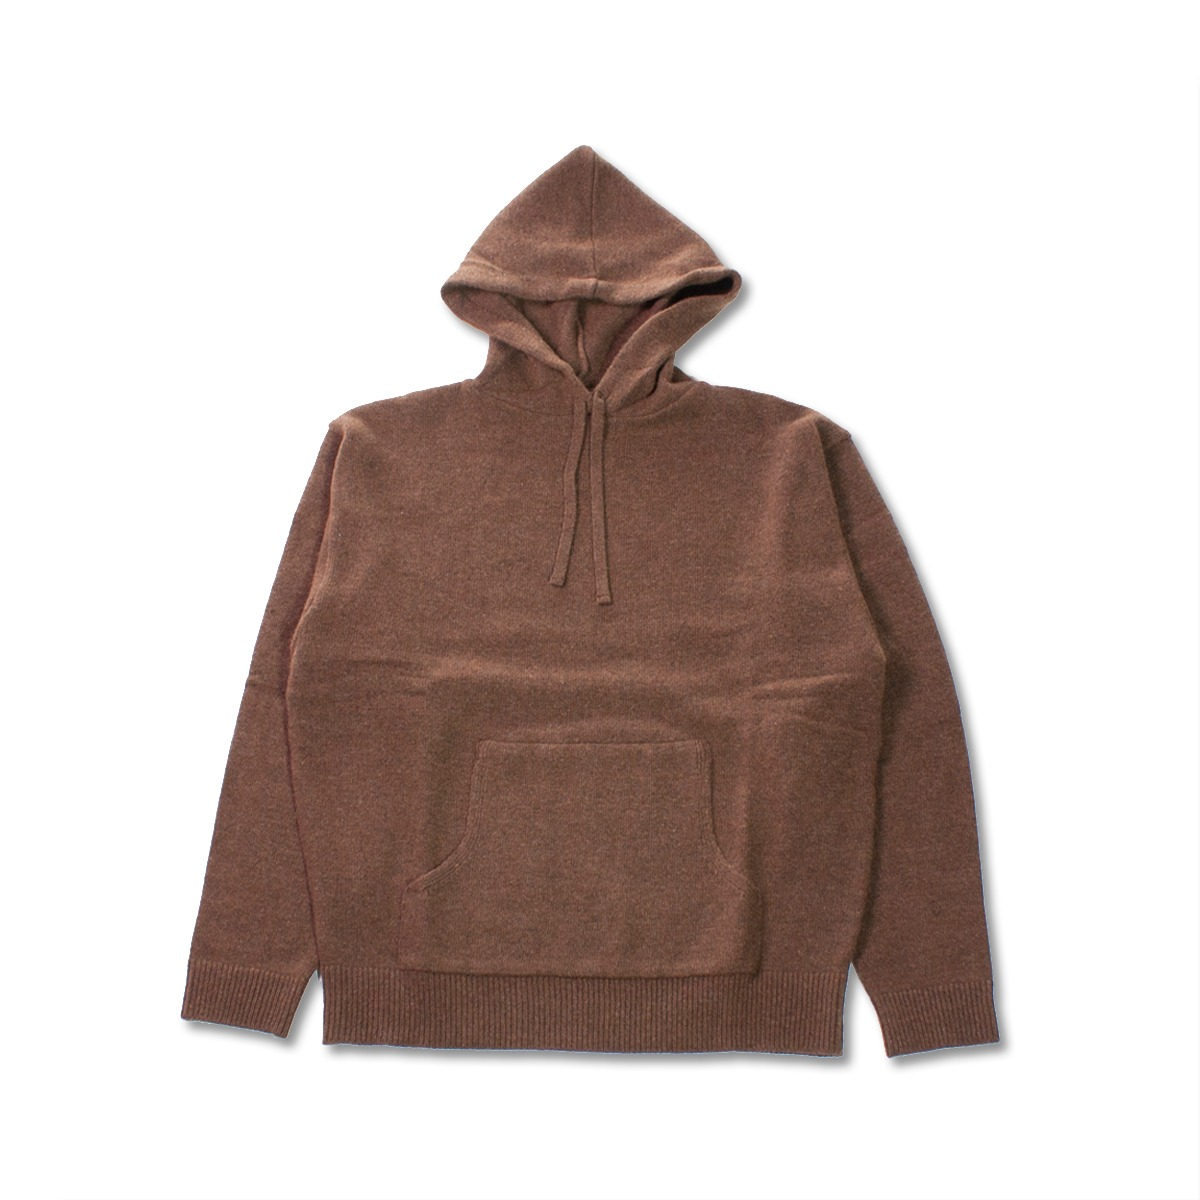 [8DIVISION] OVERSIZED KNIT HOODIE 'BROWN'